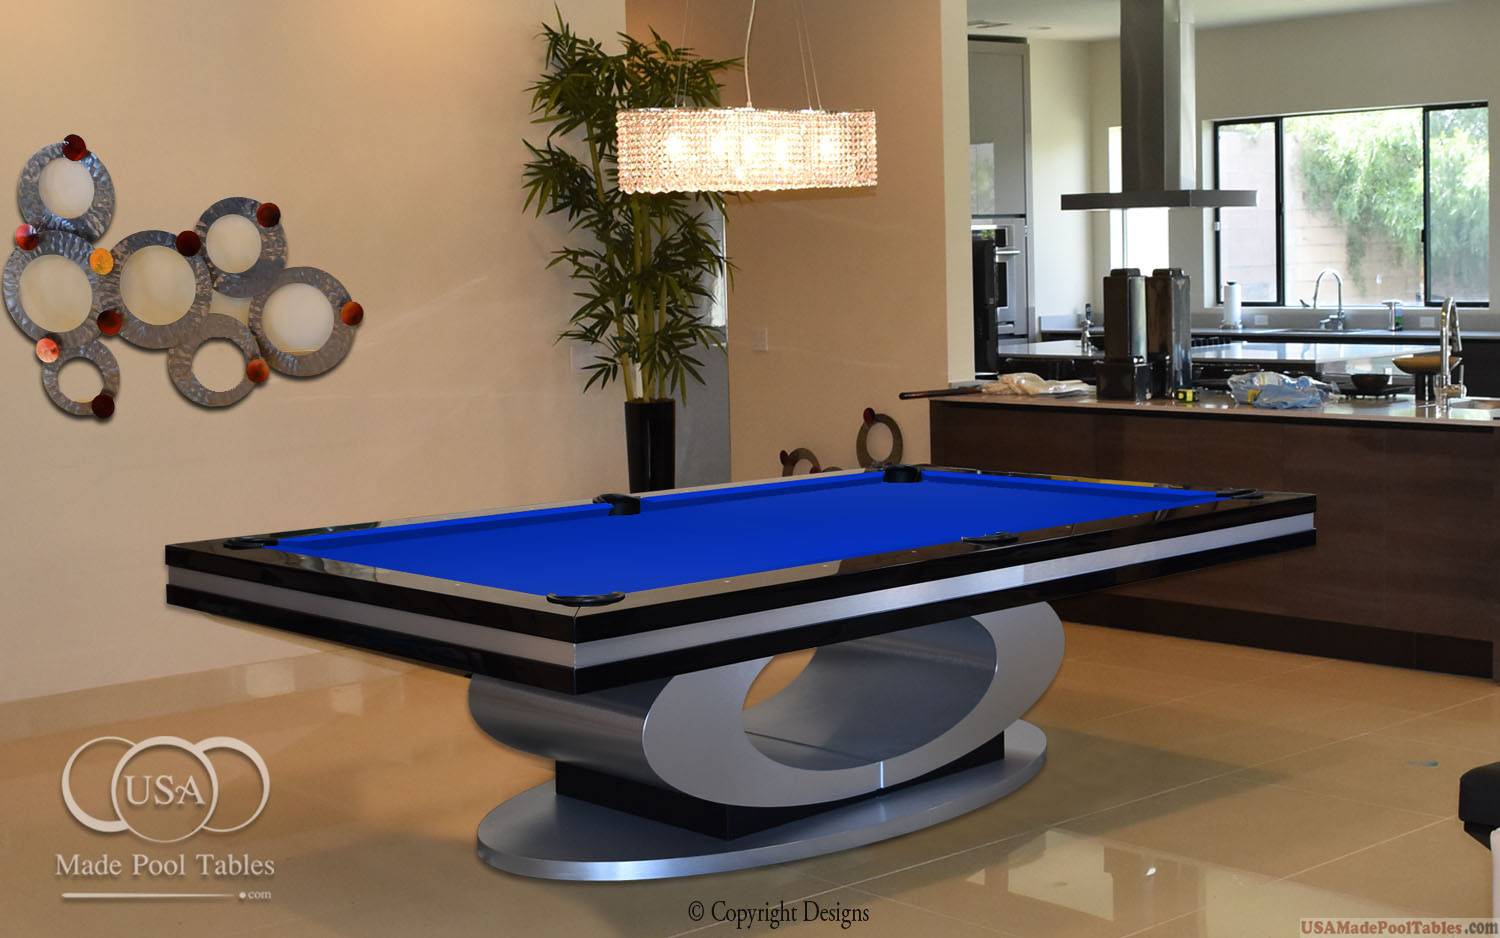 CUSTOM POOL TABLES MODERN POOL TABLES CONTEMPORARY POOL TABLE - Moving a pool table in one piece